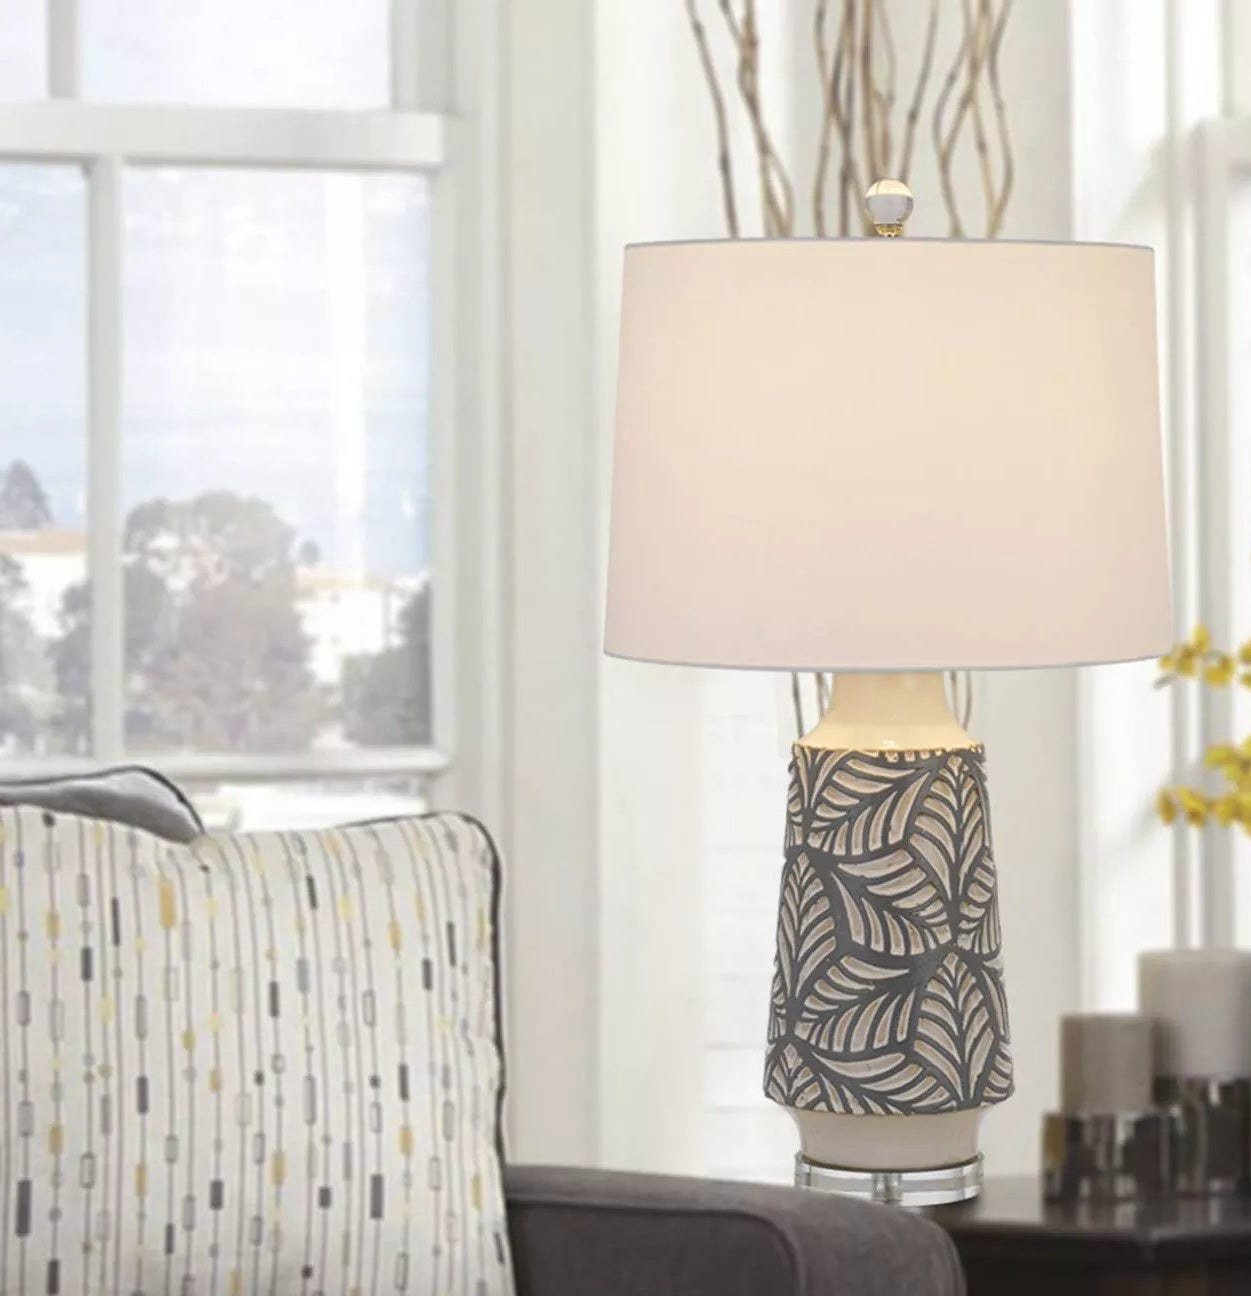 The gray and white table lamp